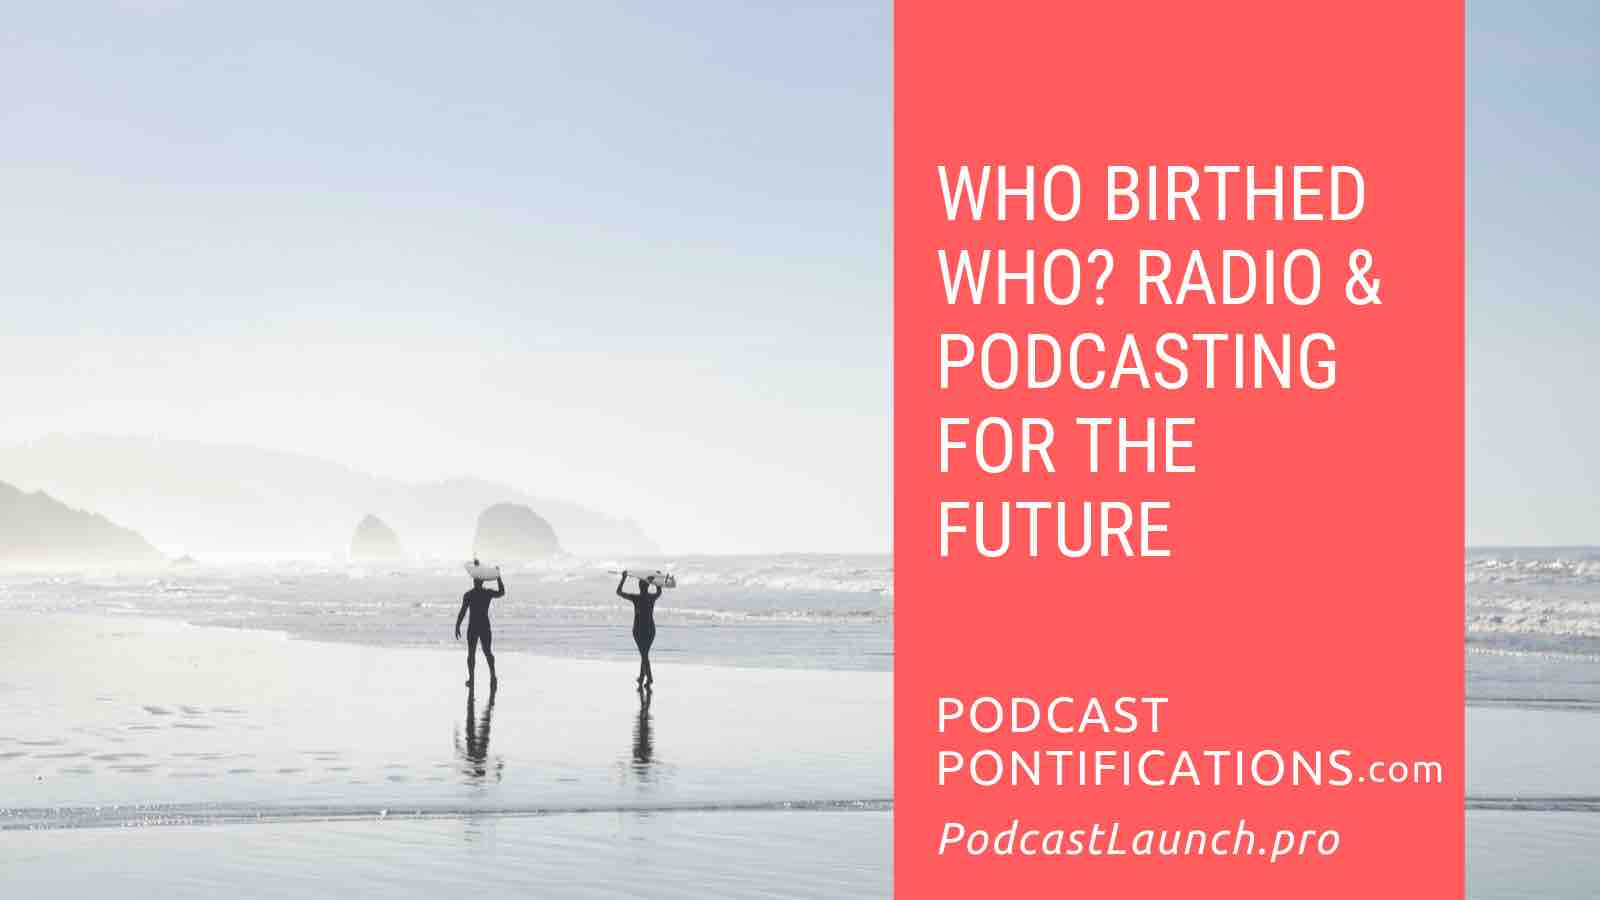 Who Birthed Whom? Radio & Podcasting For The Future